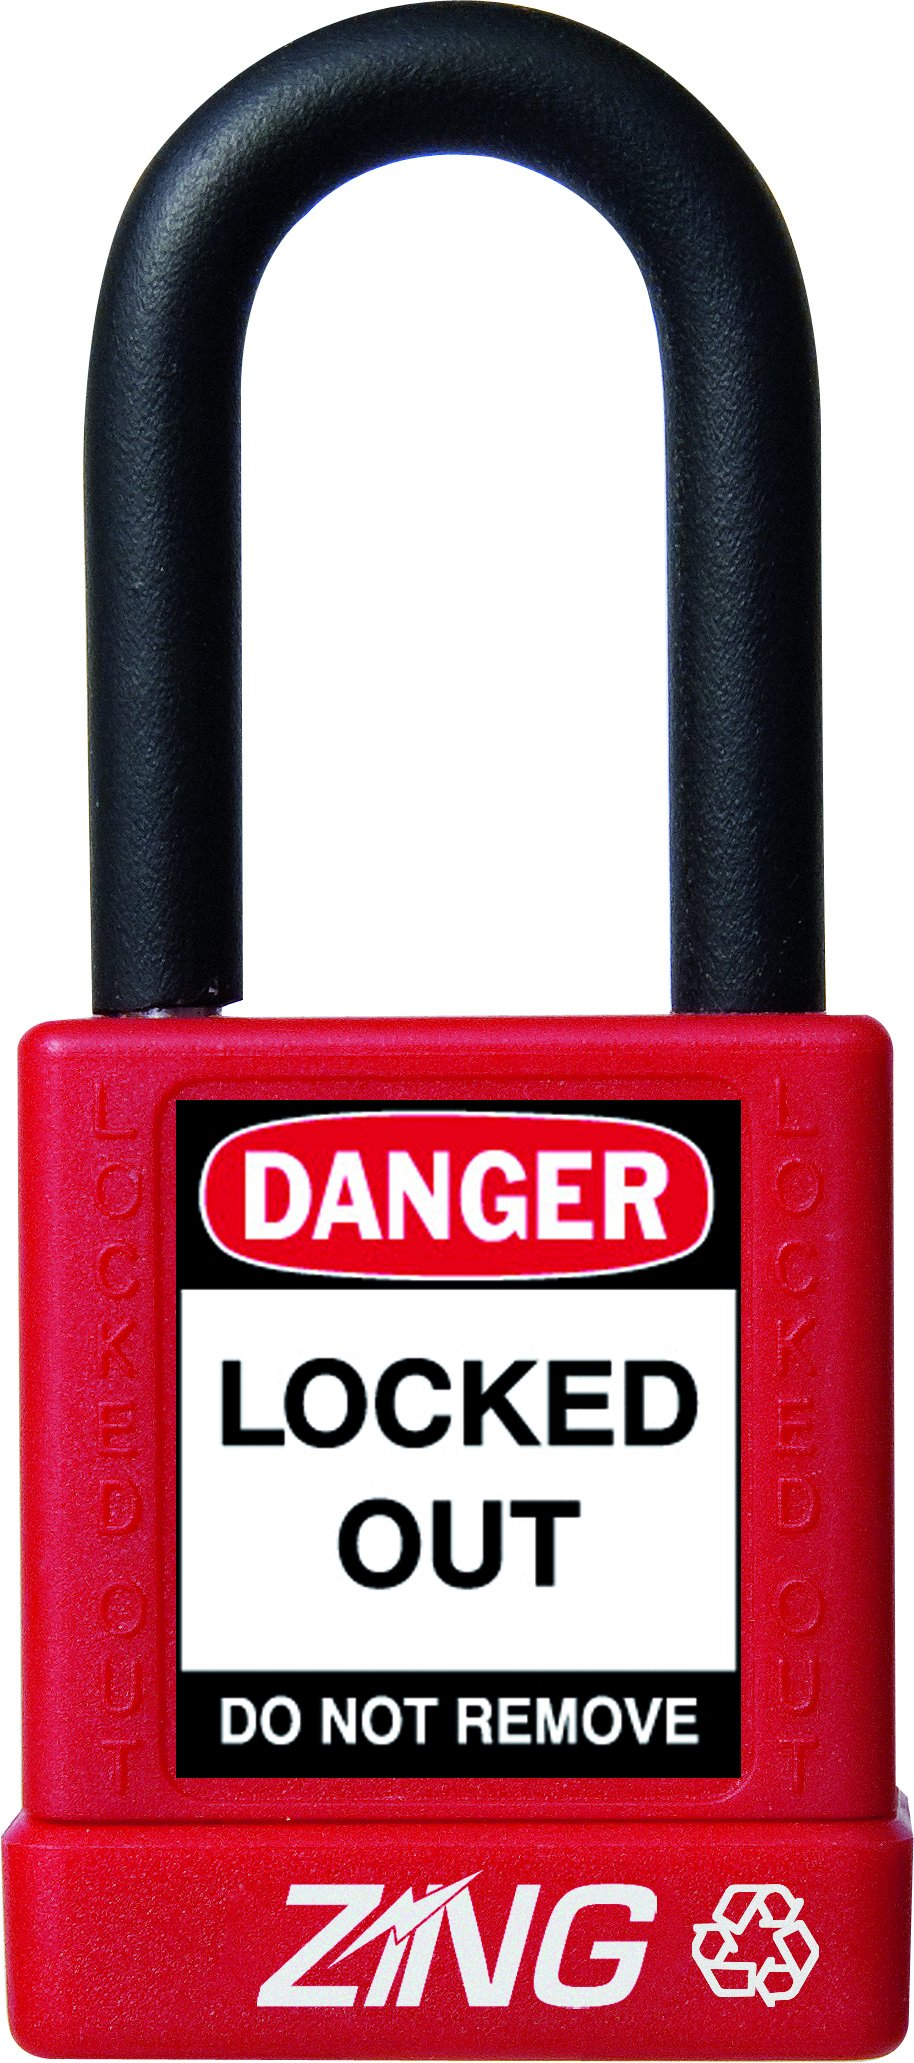 ZING 7030 RecycLock Safety Padlock, Keyed Different, 1-1/2'' Shackle, 1-3/4'' Body, Red